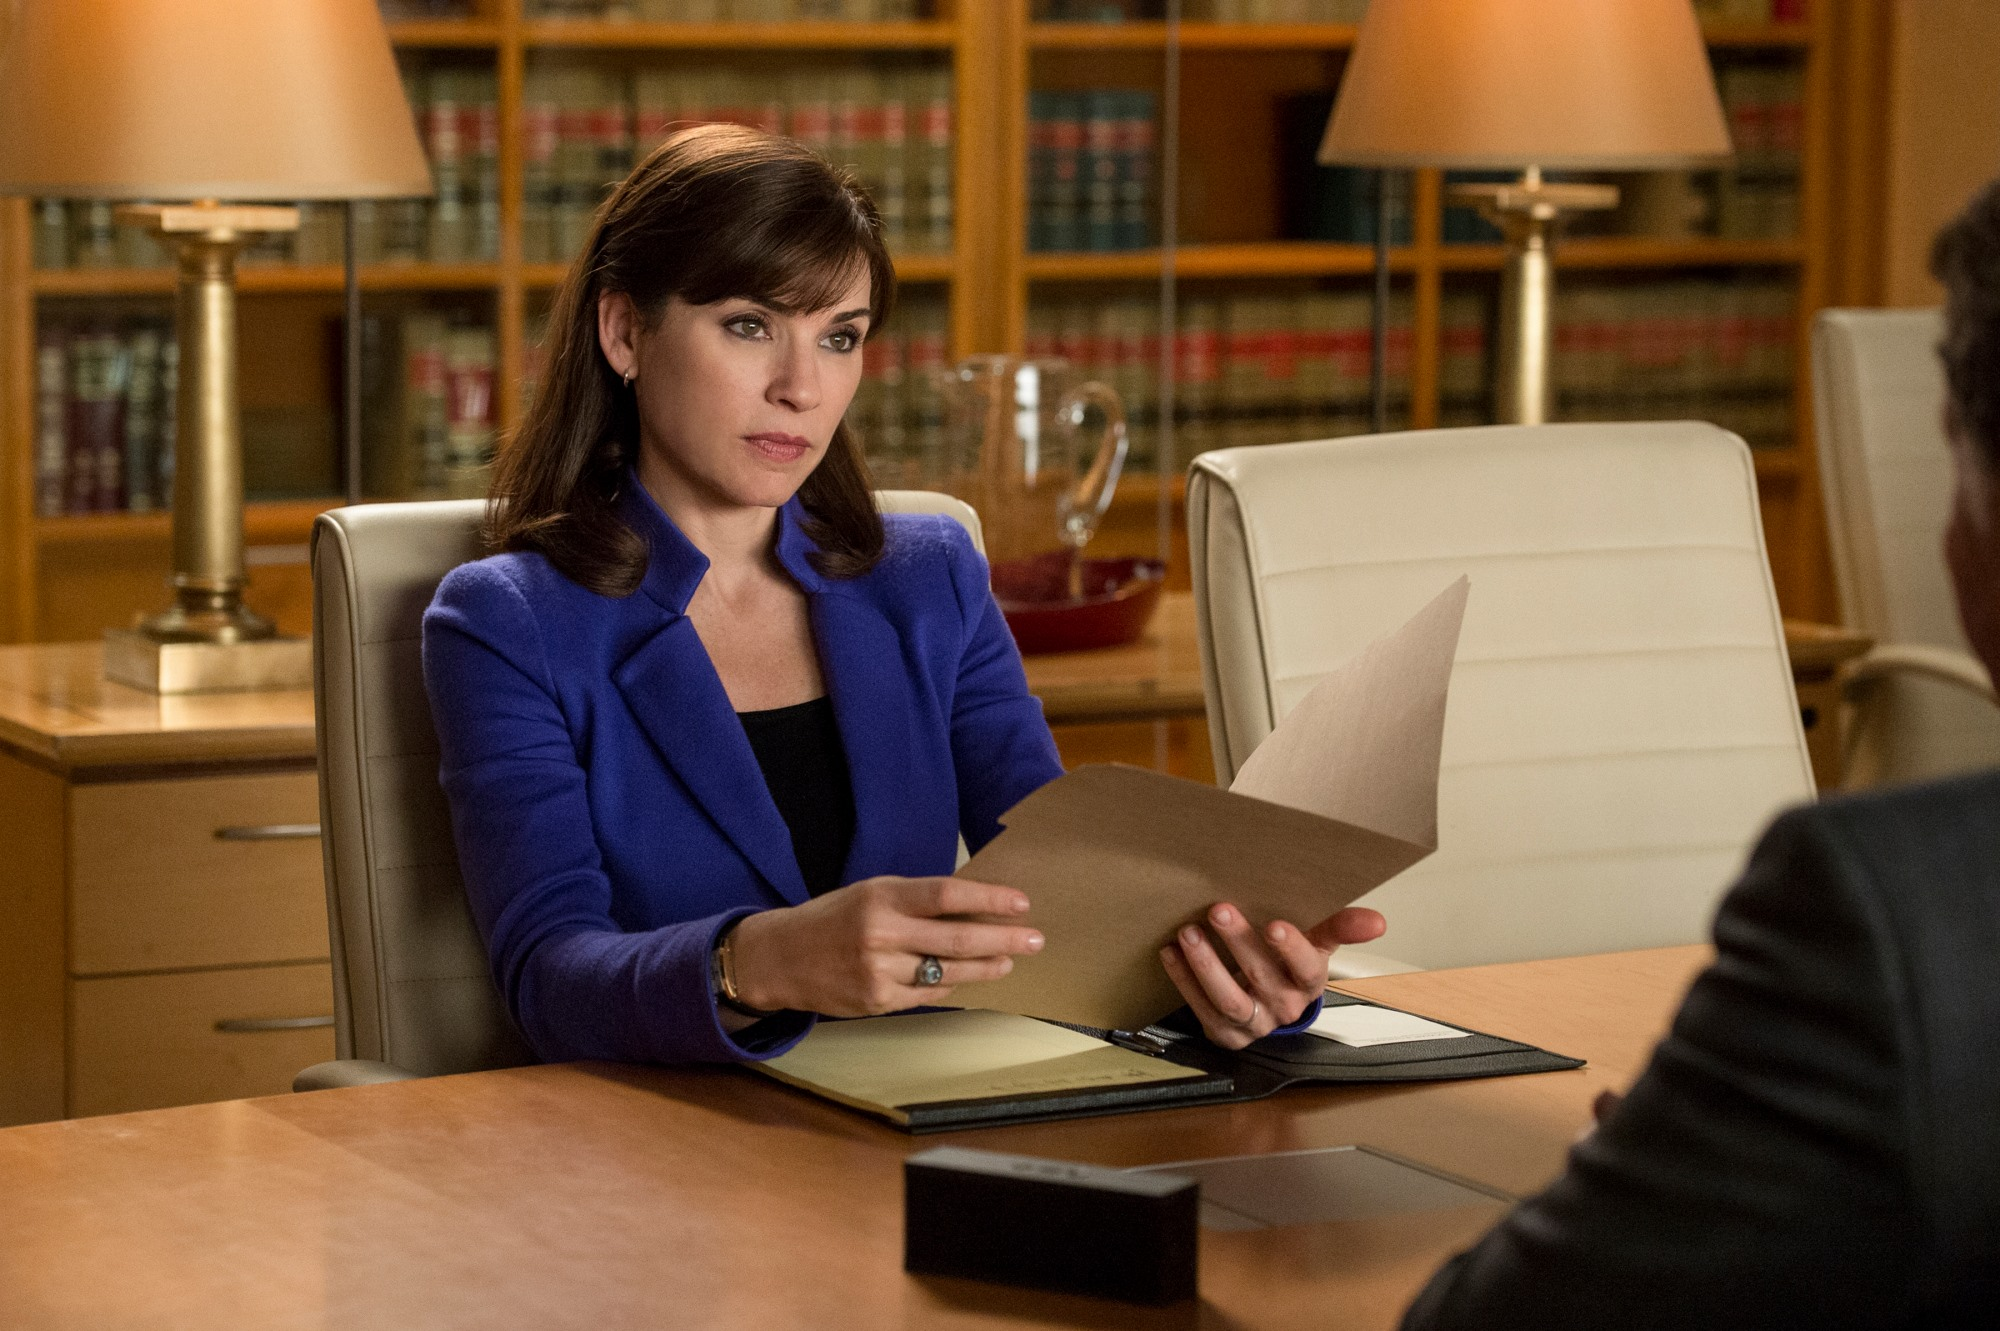 The Good Wife - 05x10 - The Decision Tree